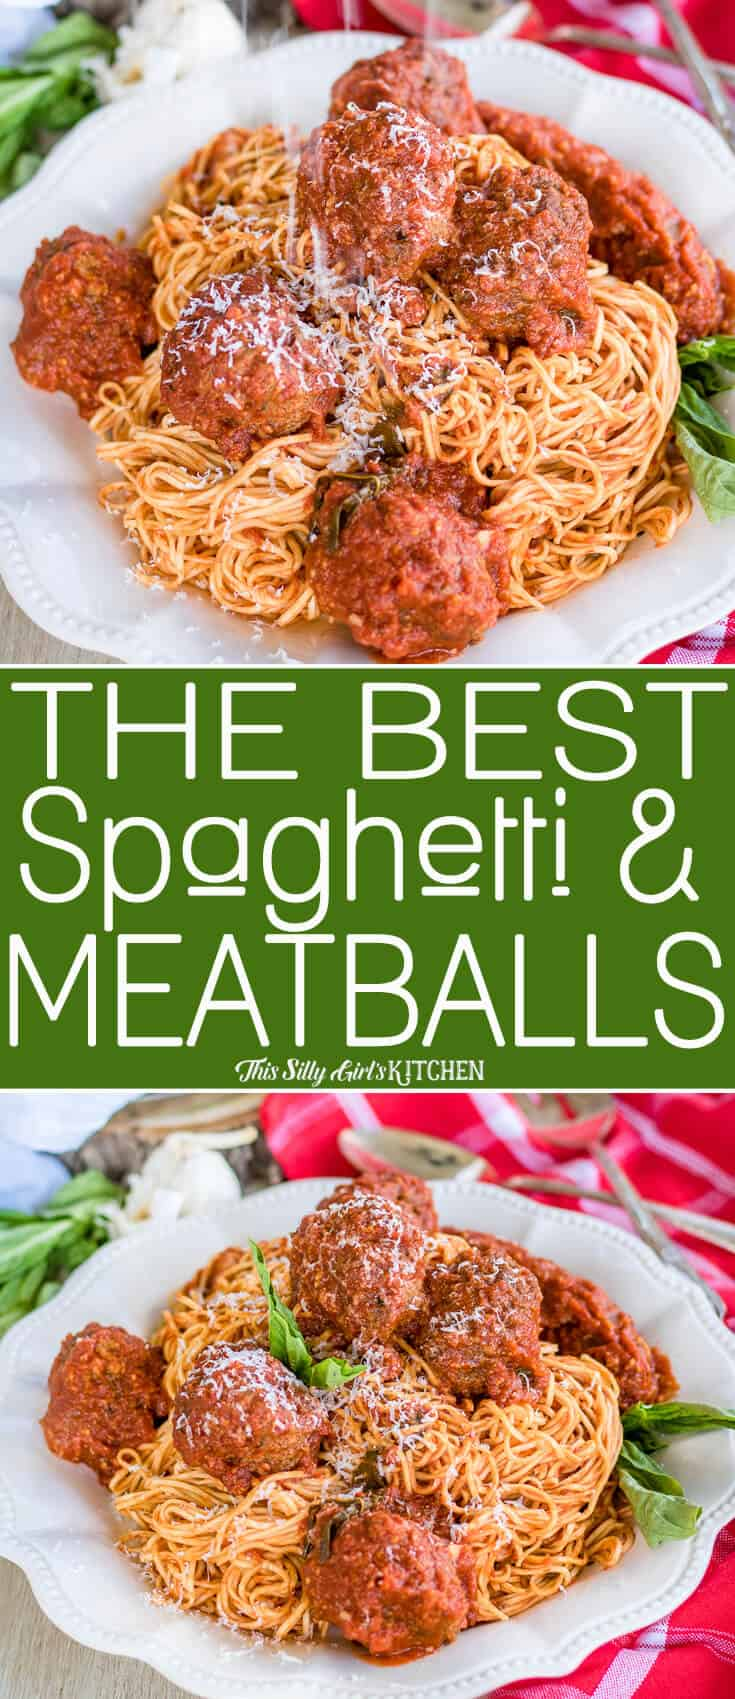 Spaghetti and Meatballs on white plate Pinterest Image